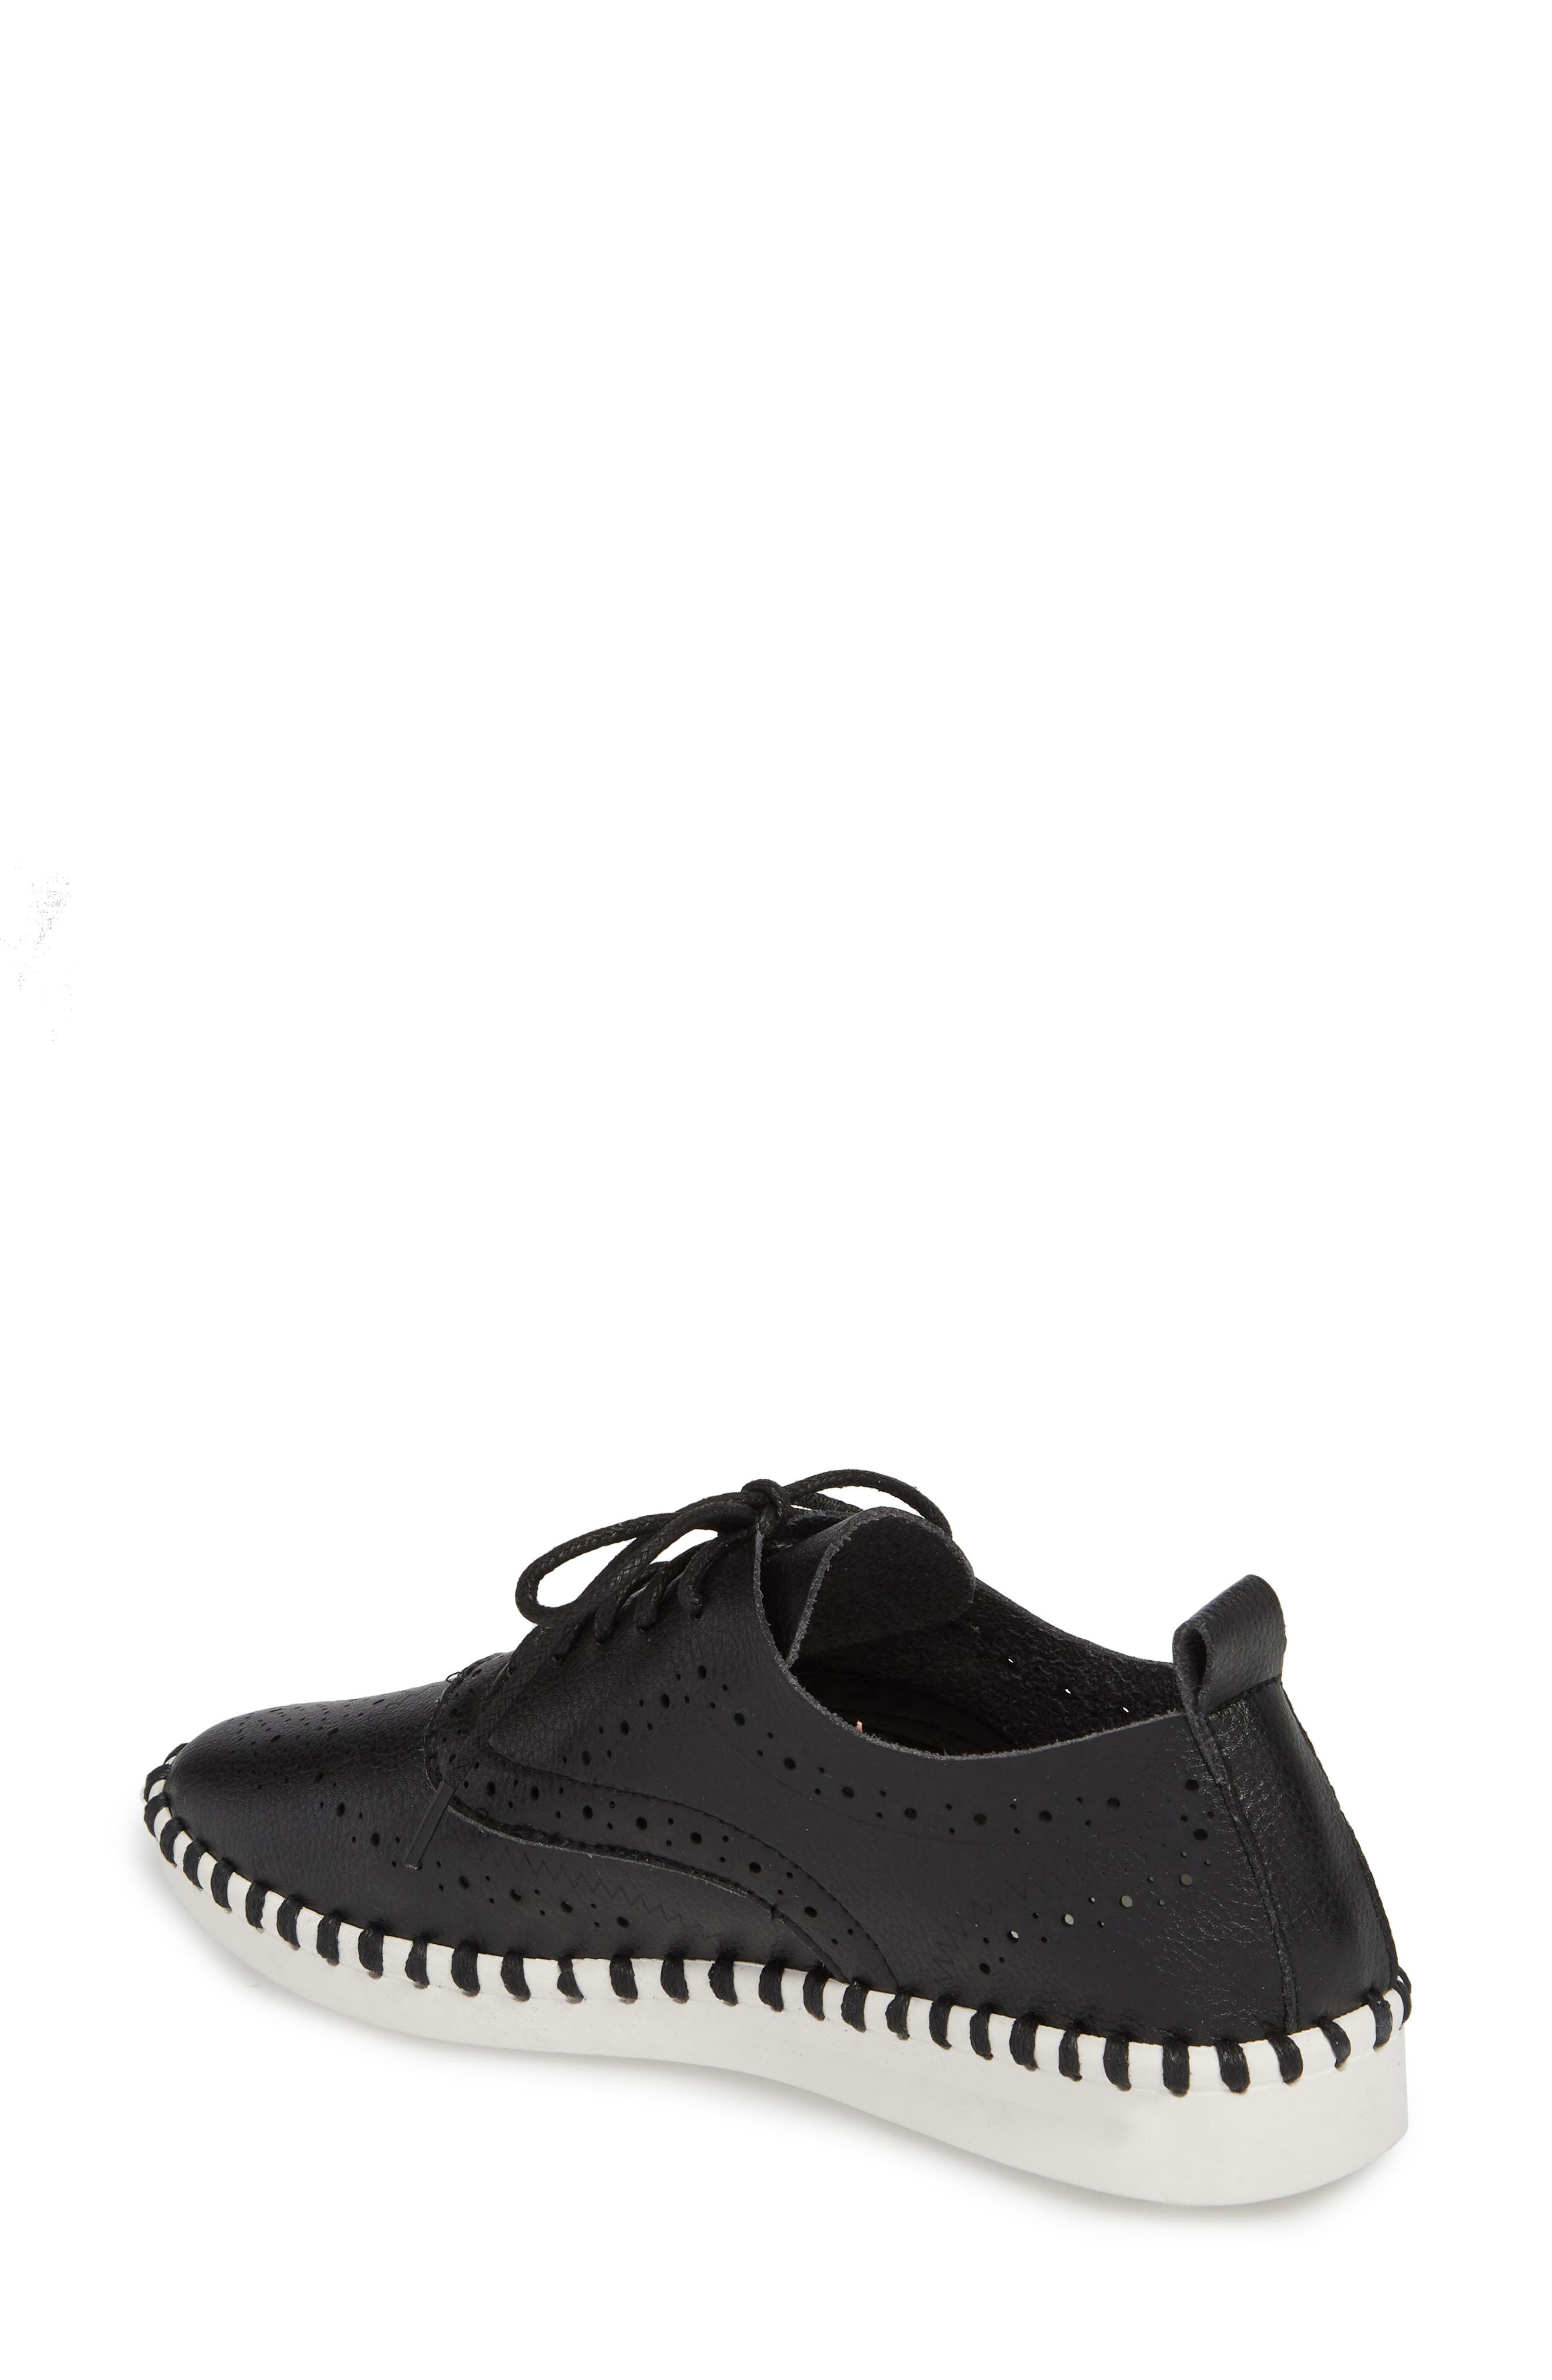 Salinas Waterproof Brogue Lace-Up Sneaker,                             Alternate thumbnail 2, color,                             BLACK FAUX LEATHER